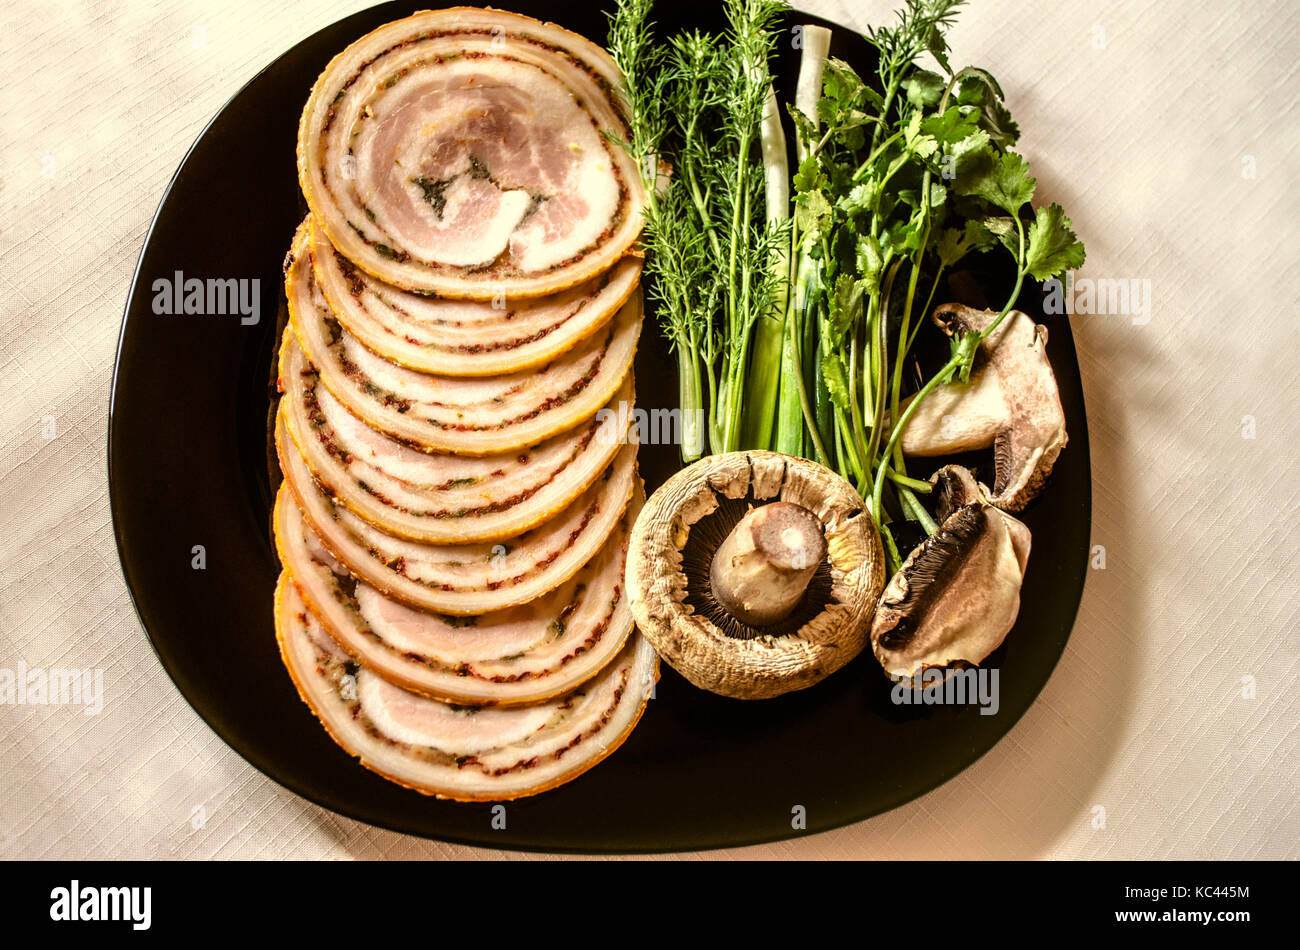 Sliced meatloaf with acute seasonings of smoked pork tenderloin Stock Photo